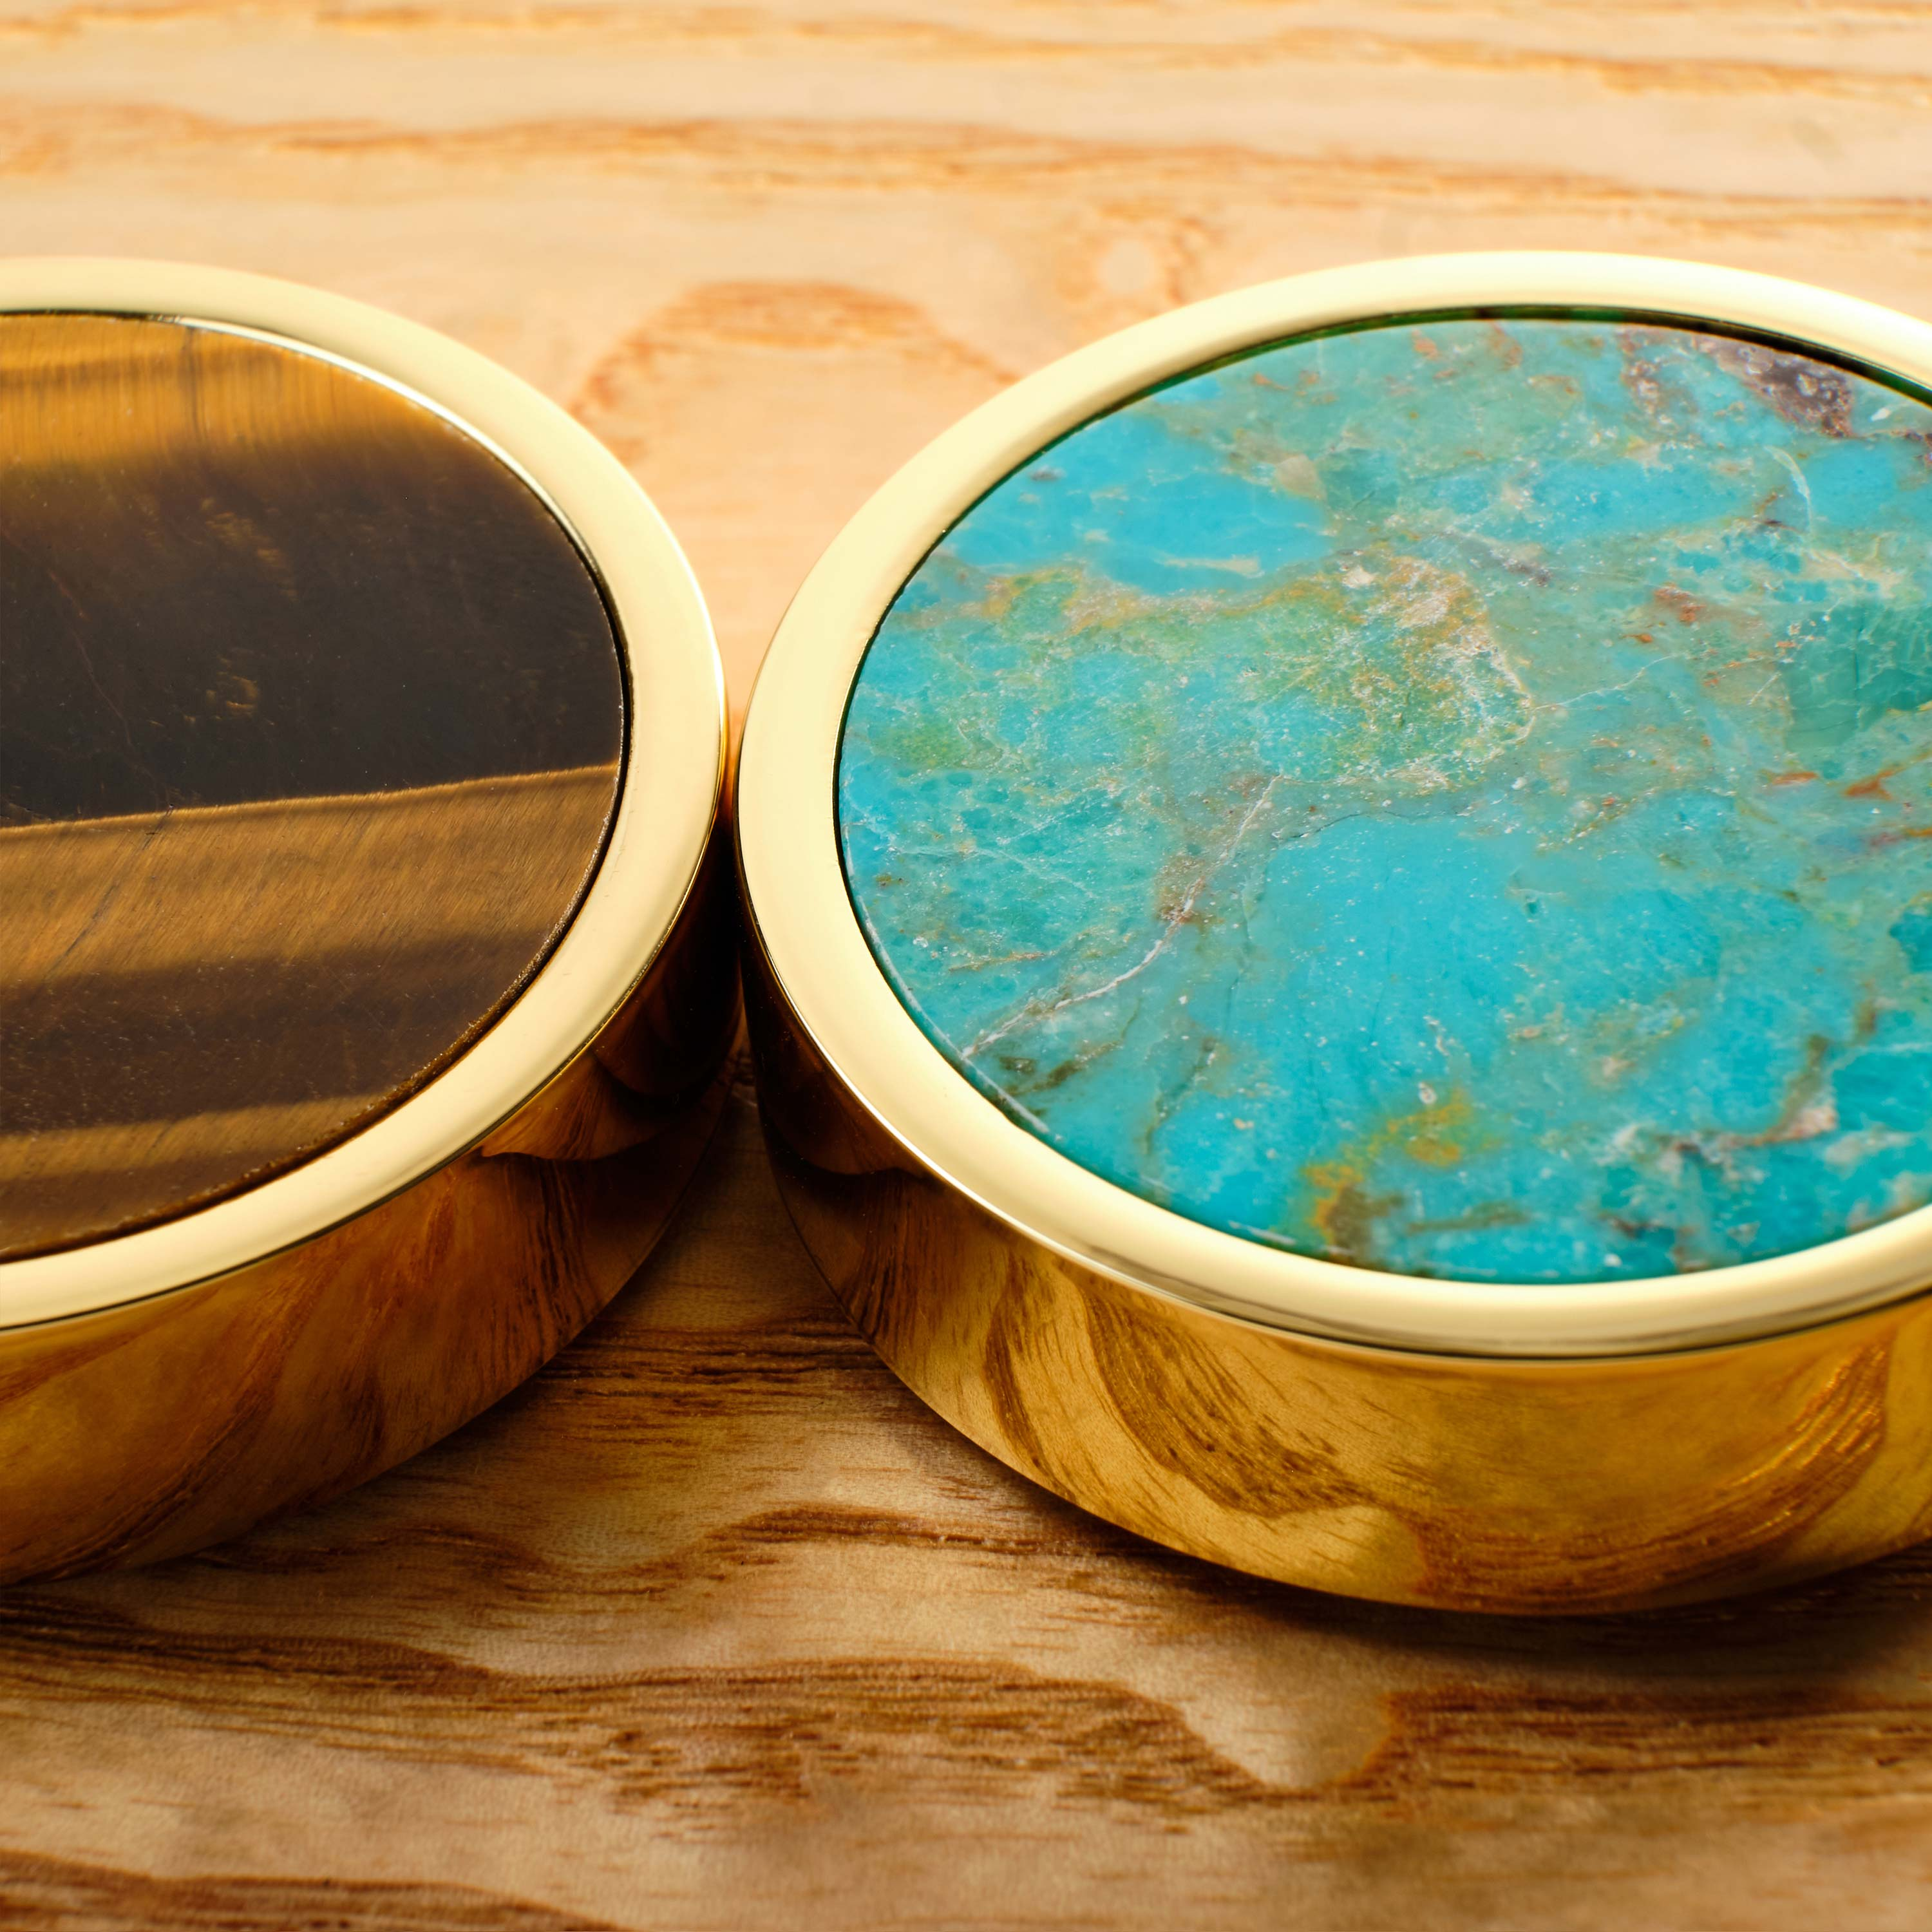 turquoise playing piece